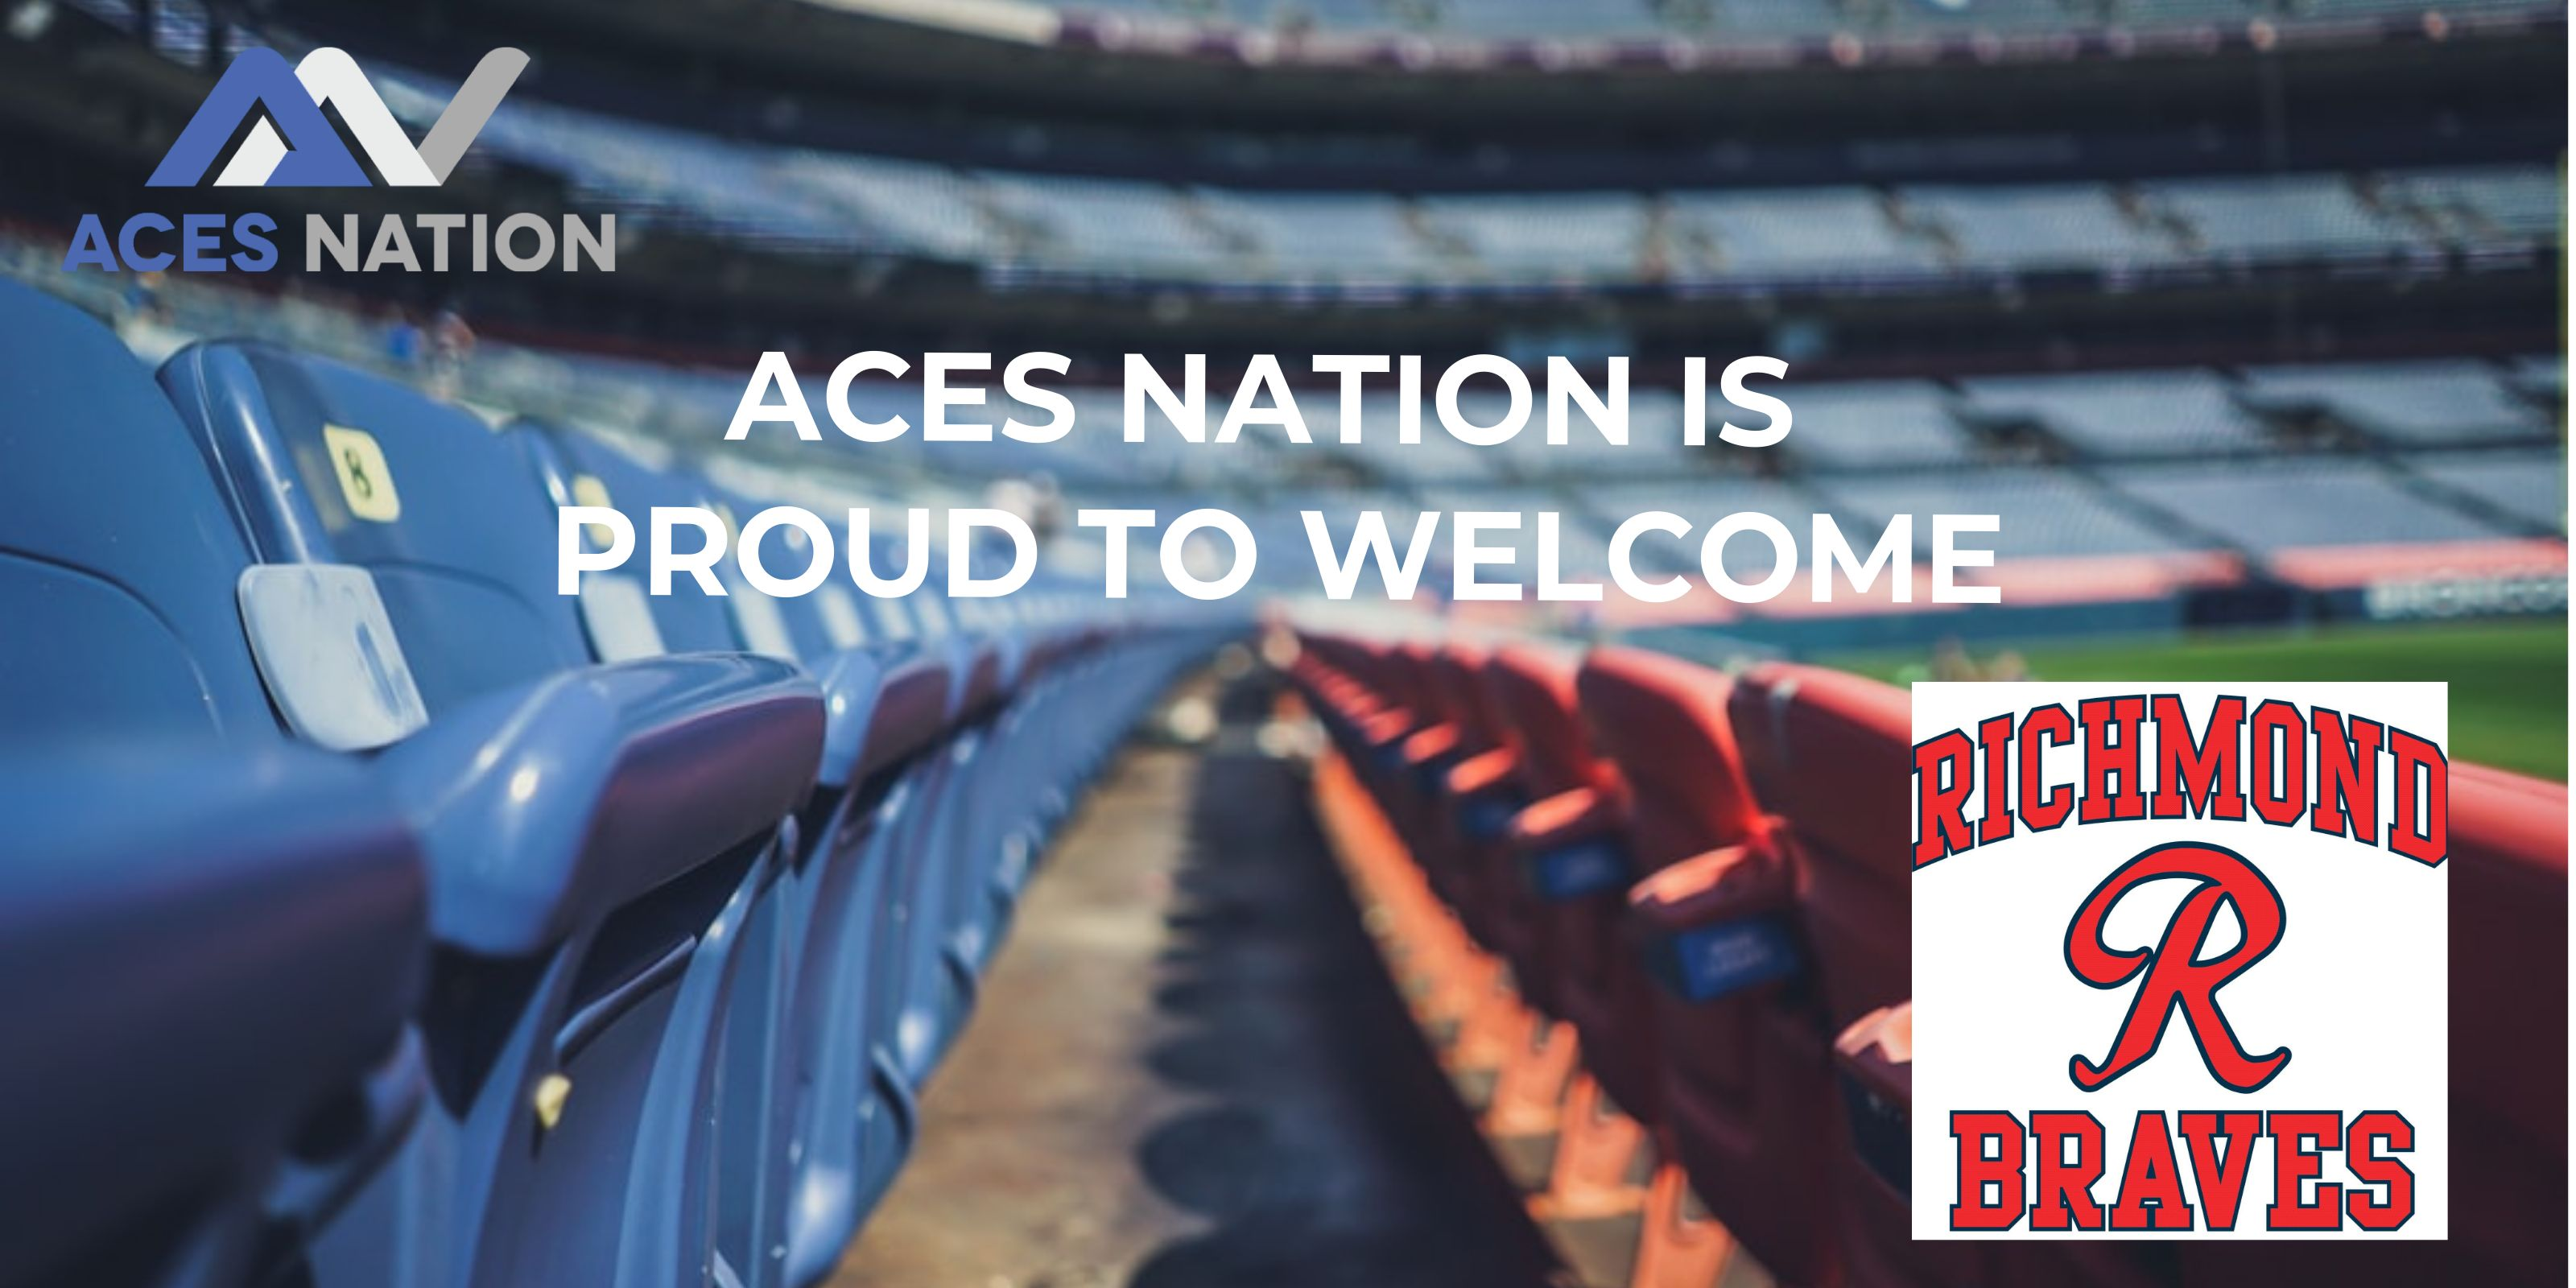 richmond braves join aces nation